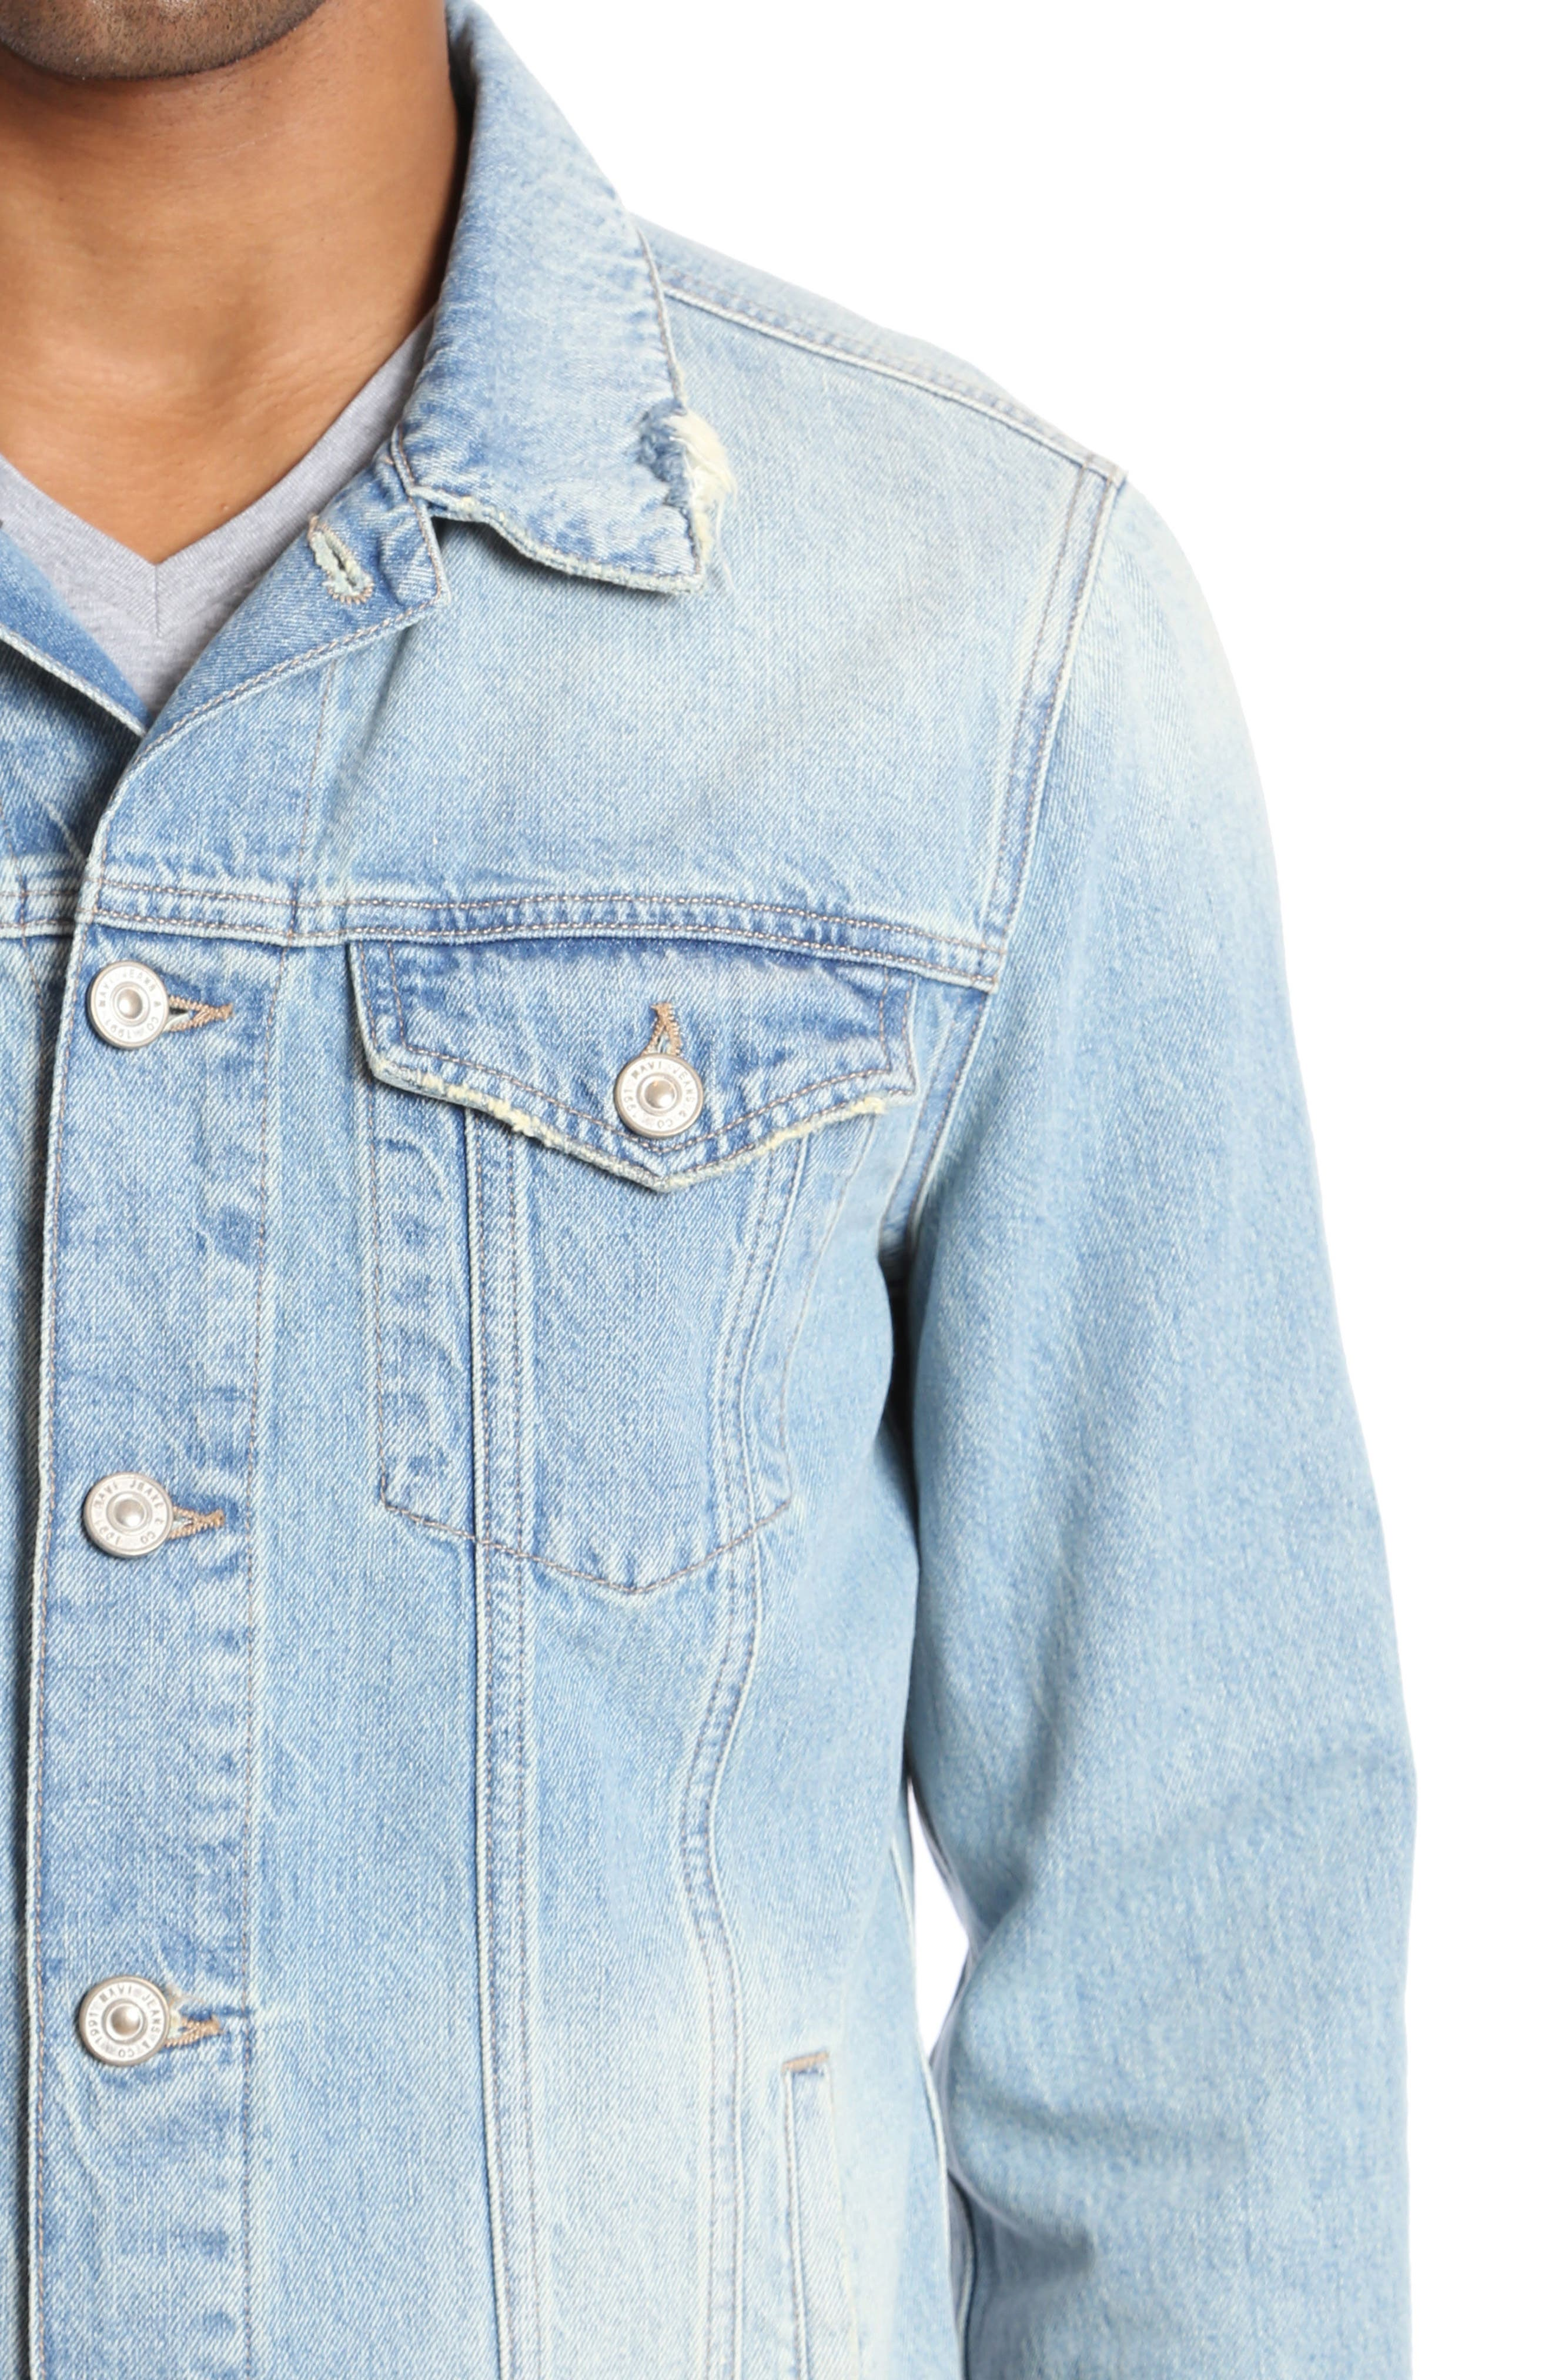 Frank Denim Jacket,                             Alternate thumbnail 3, color,                             BLEACH VINTAGE RIGID